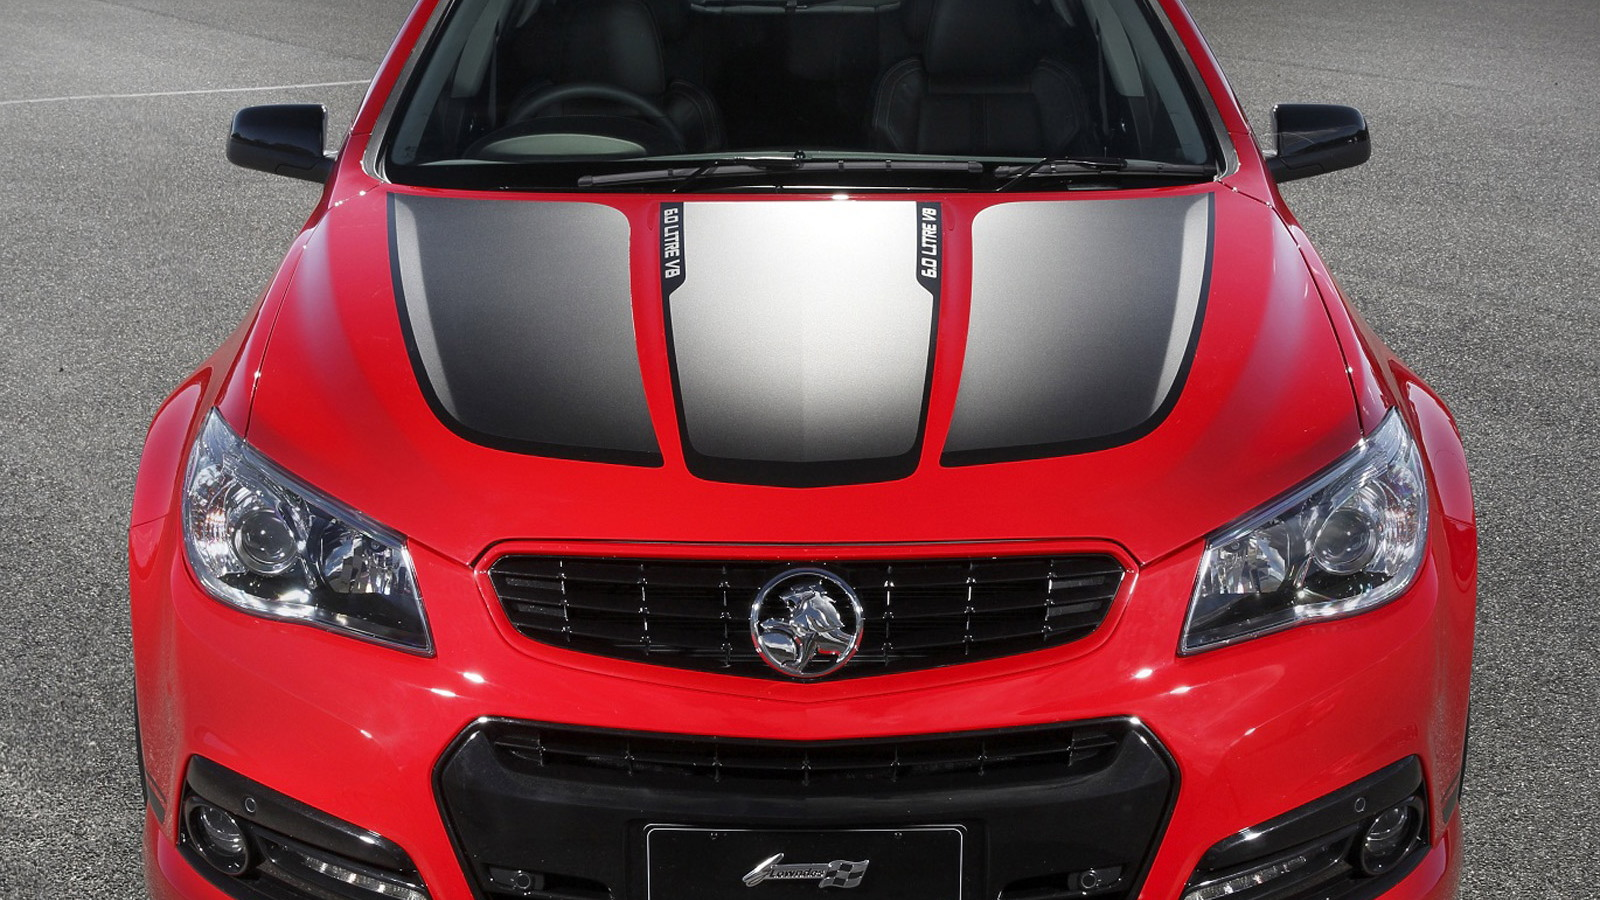 2015 Holden Commodore SSV Gets Special Edition Inspired By